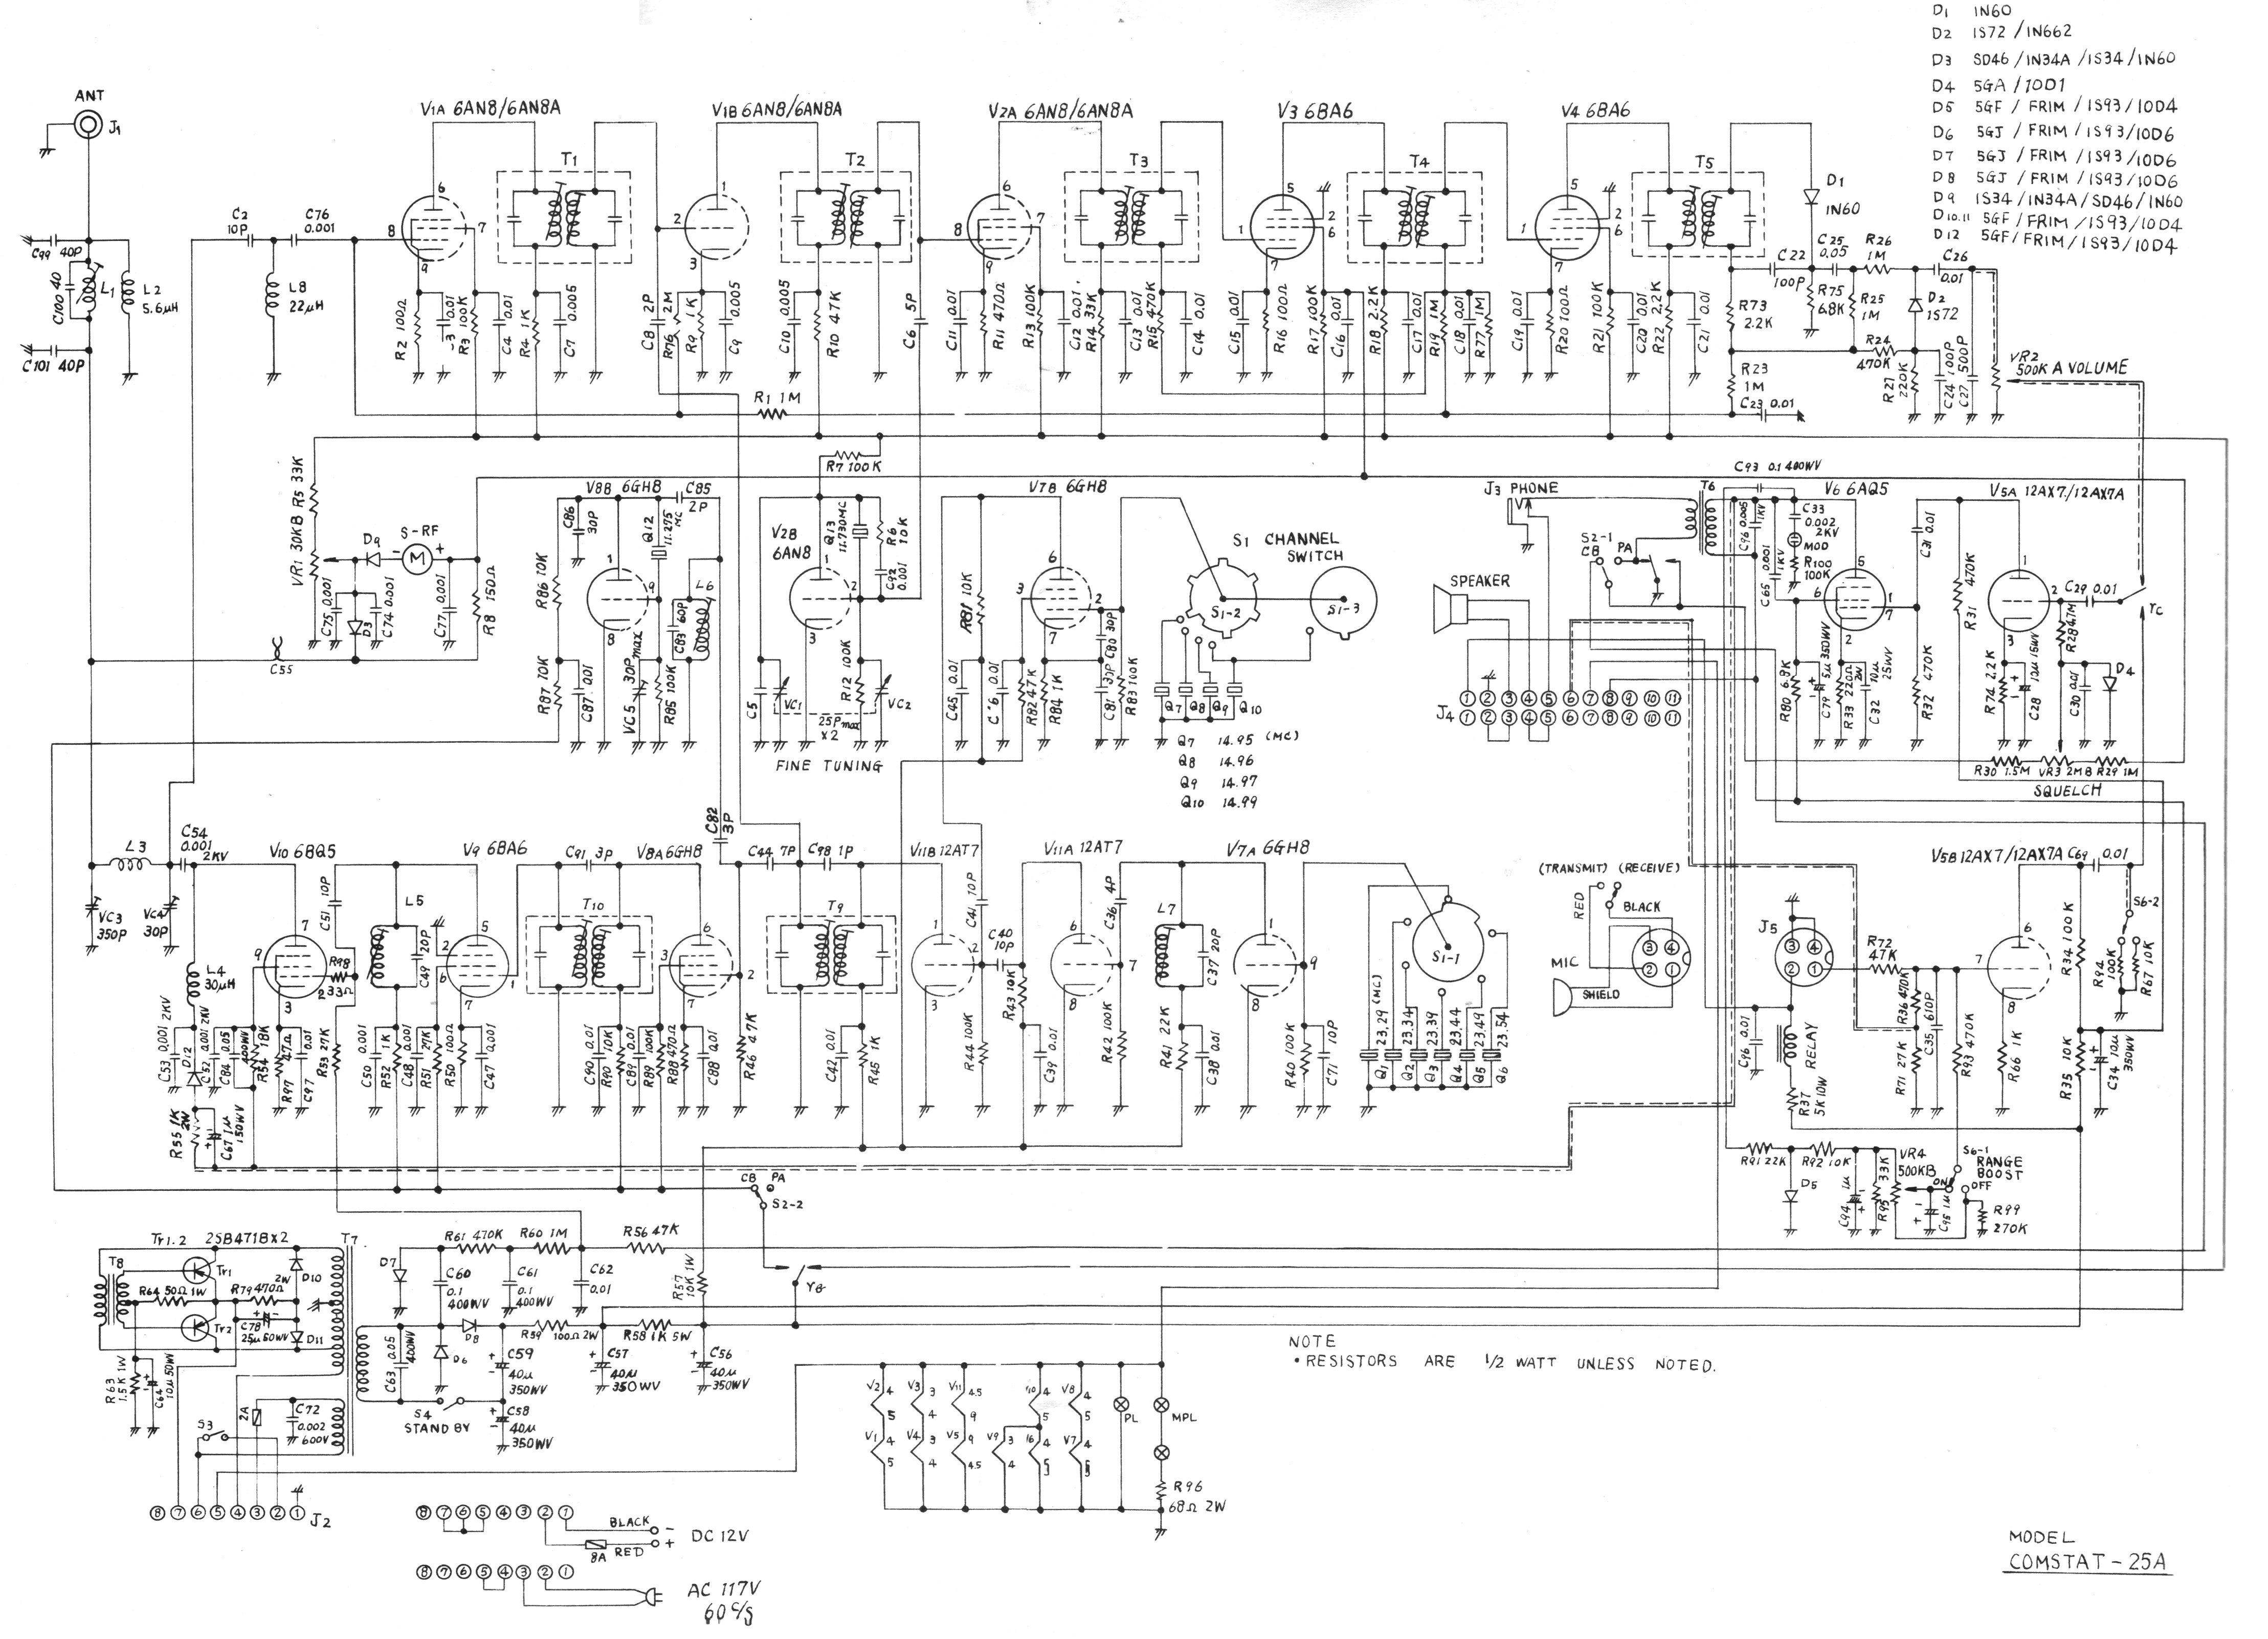 Lafayette Comstat 25A (99-3130WX) on troubleshooting diagrams, smart car diagrams, electronic circuit diagrams, gmc fuse box diagrams, internet of things diagrams, snatch block diagrams, motor diagrams, battery diagrams, pinout diagrams, lighting diagrams, sincgars radio configurations diagrams, friendship bracelet diagrams, hvac diagrams, honda motorcycle repair diagrams, electrical diagrams, led circuit diagrams, series and parallel circuits diagrams, engine diagrams, transformer diagrams, switch diagrams,